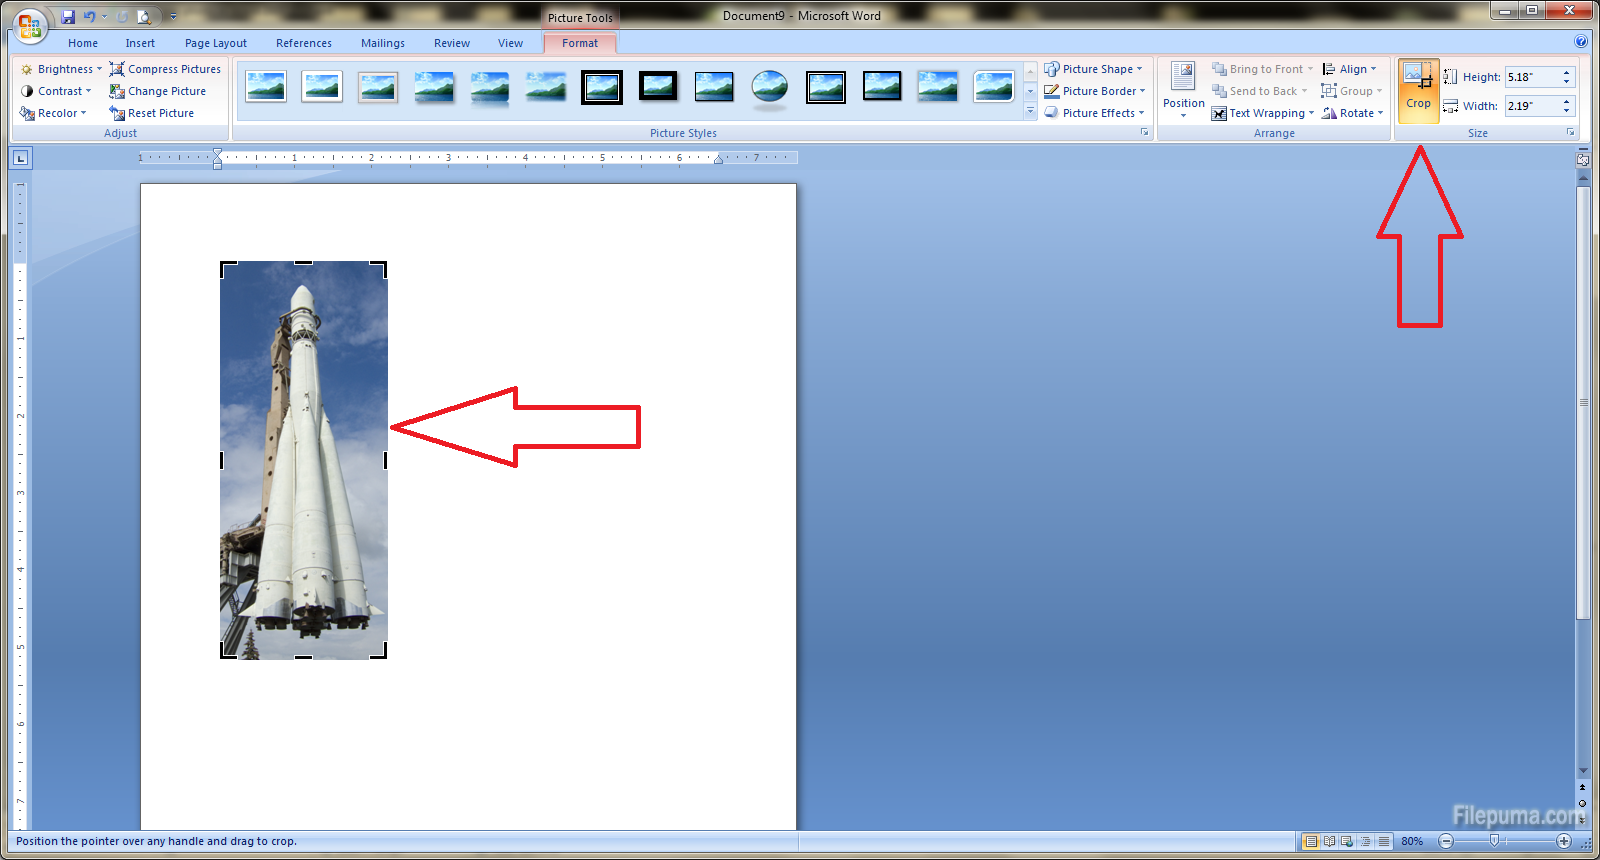 How to crop a photo in Microsoft Word 2007? | News – Filepuma com